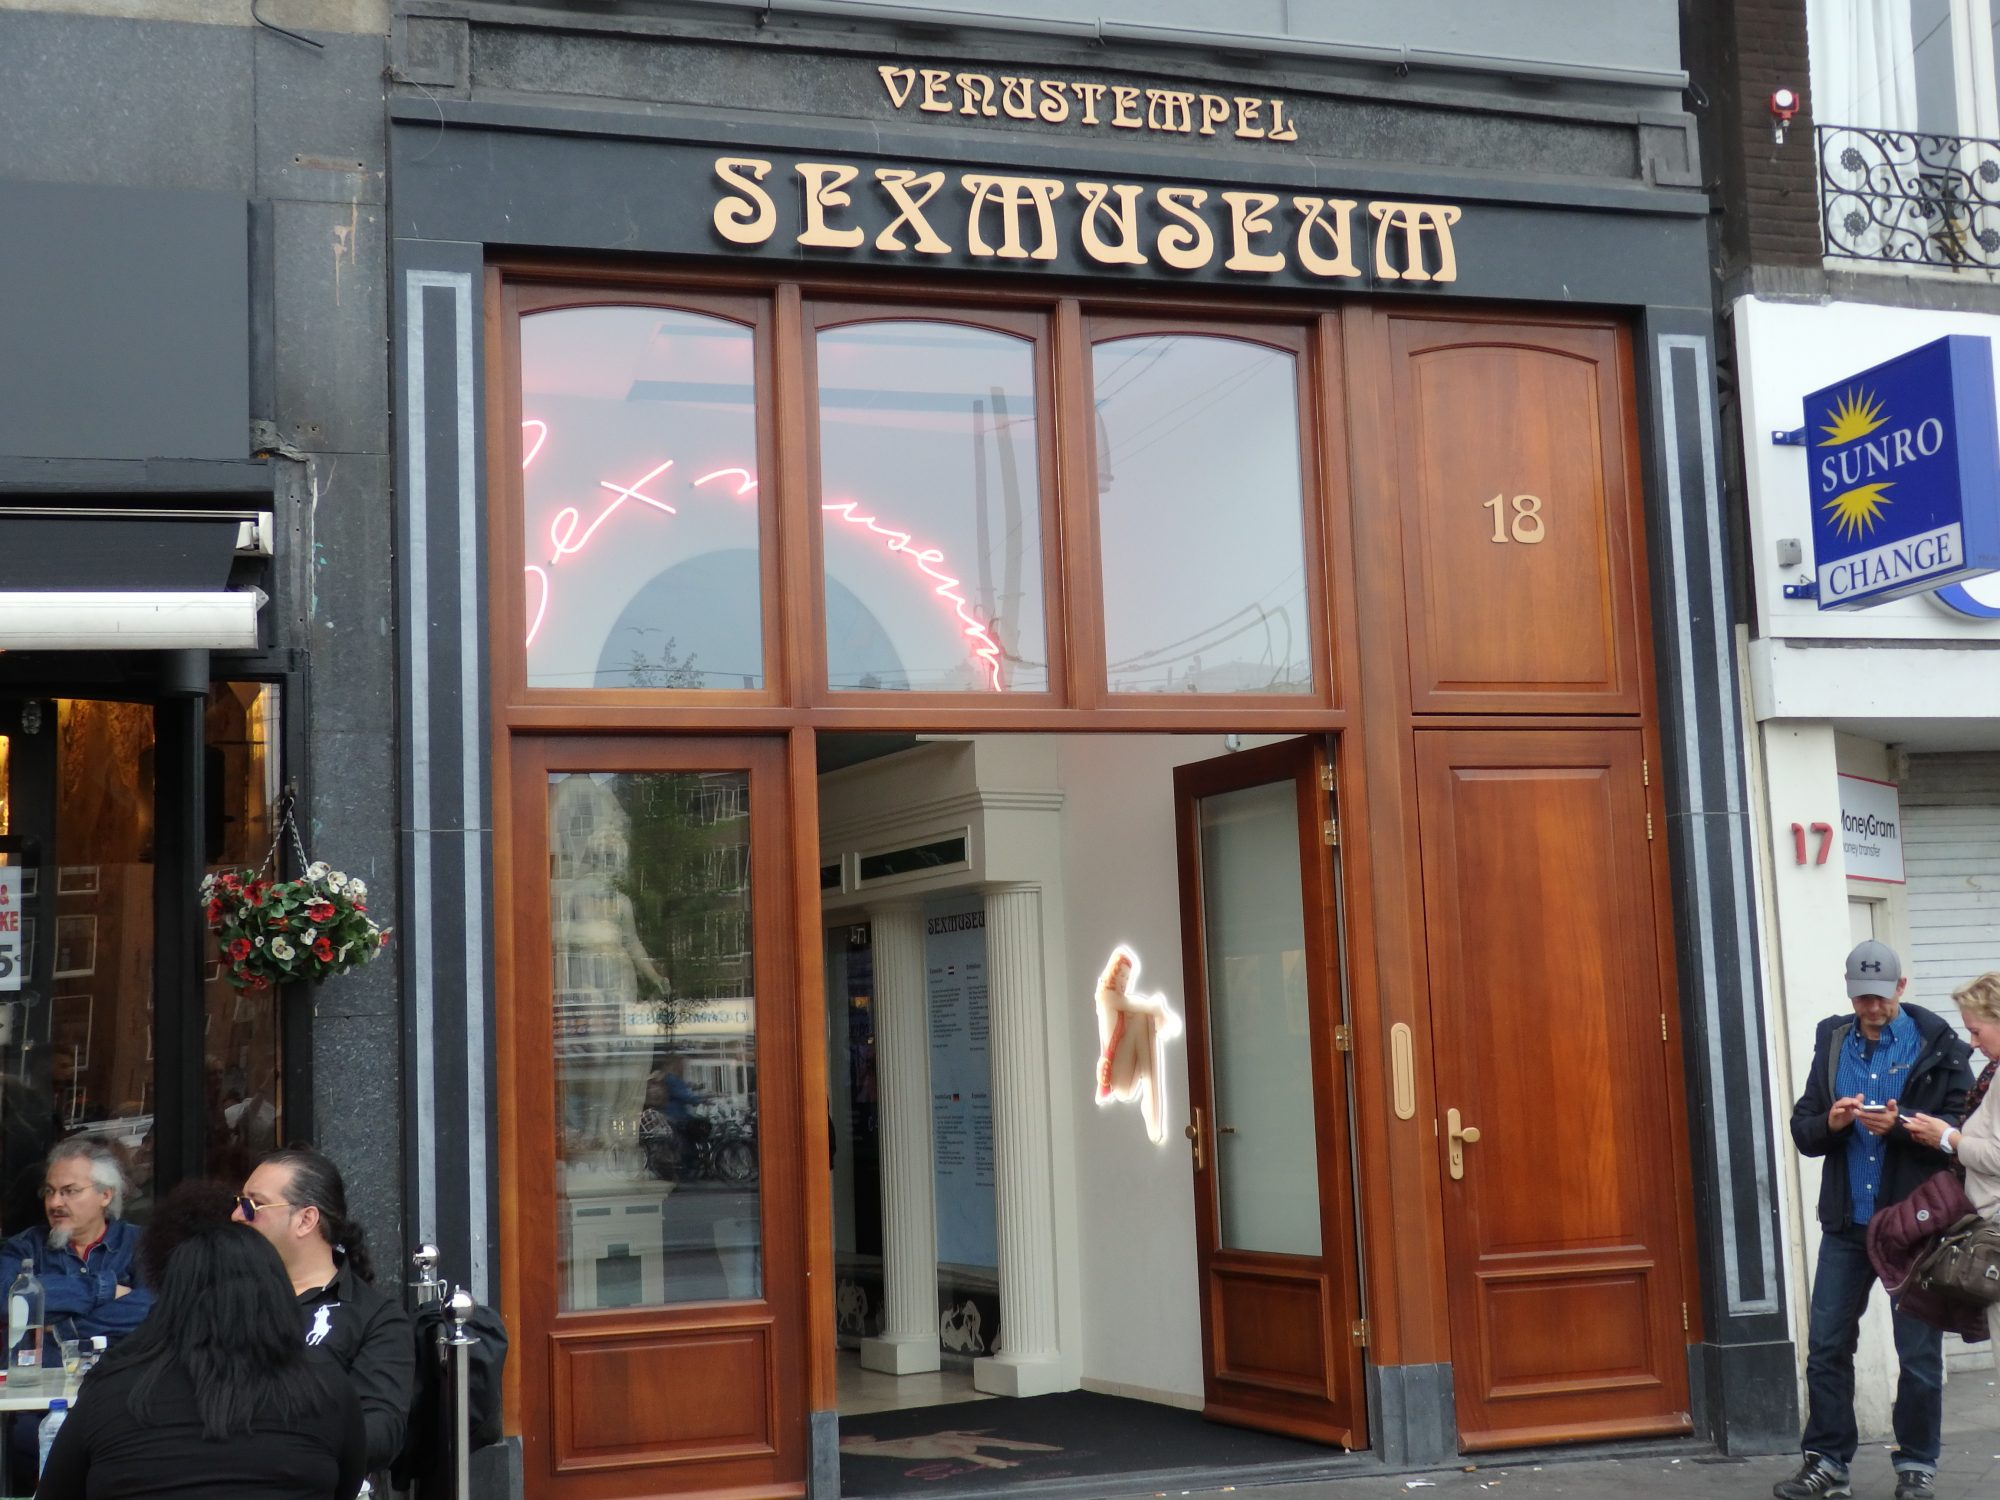 The Sex Museum's entrance is a storefront on busy Damrak.